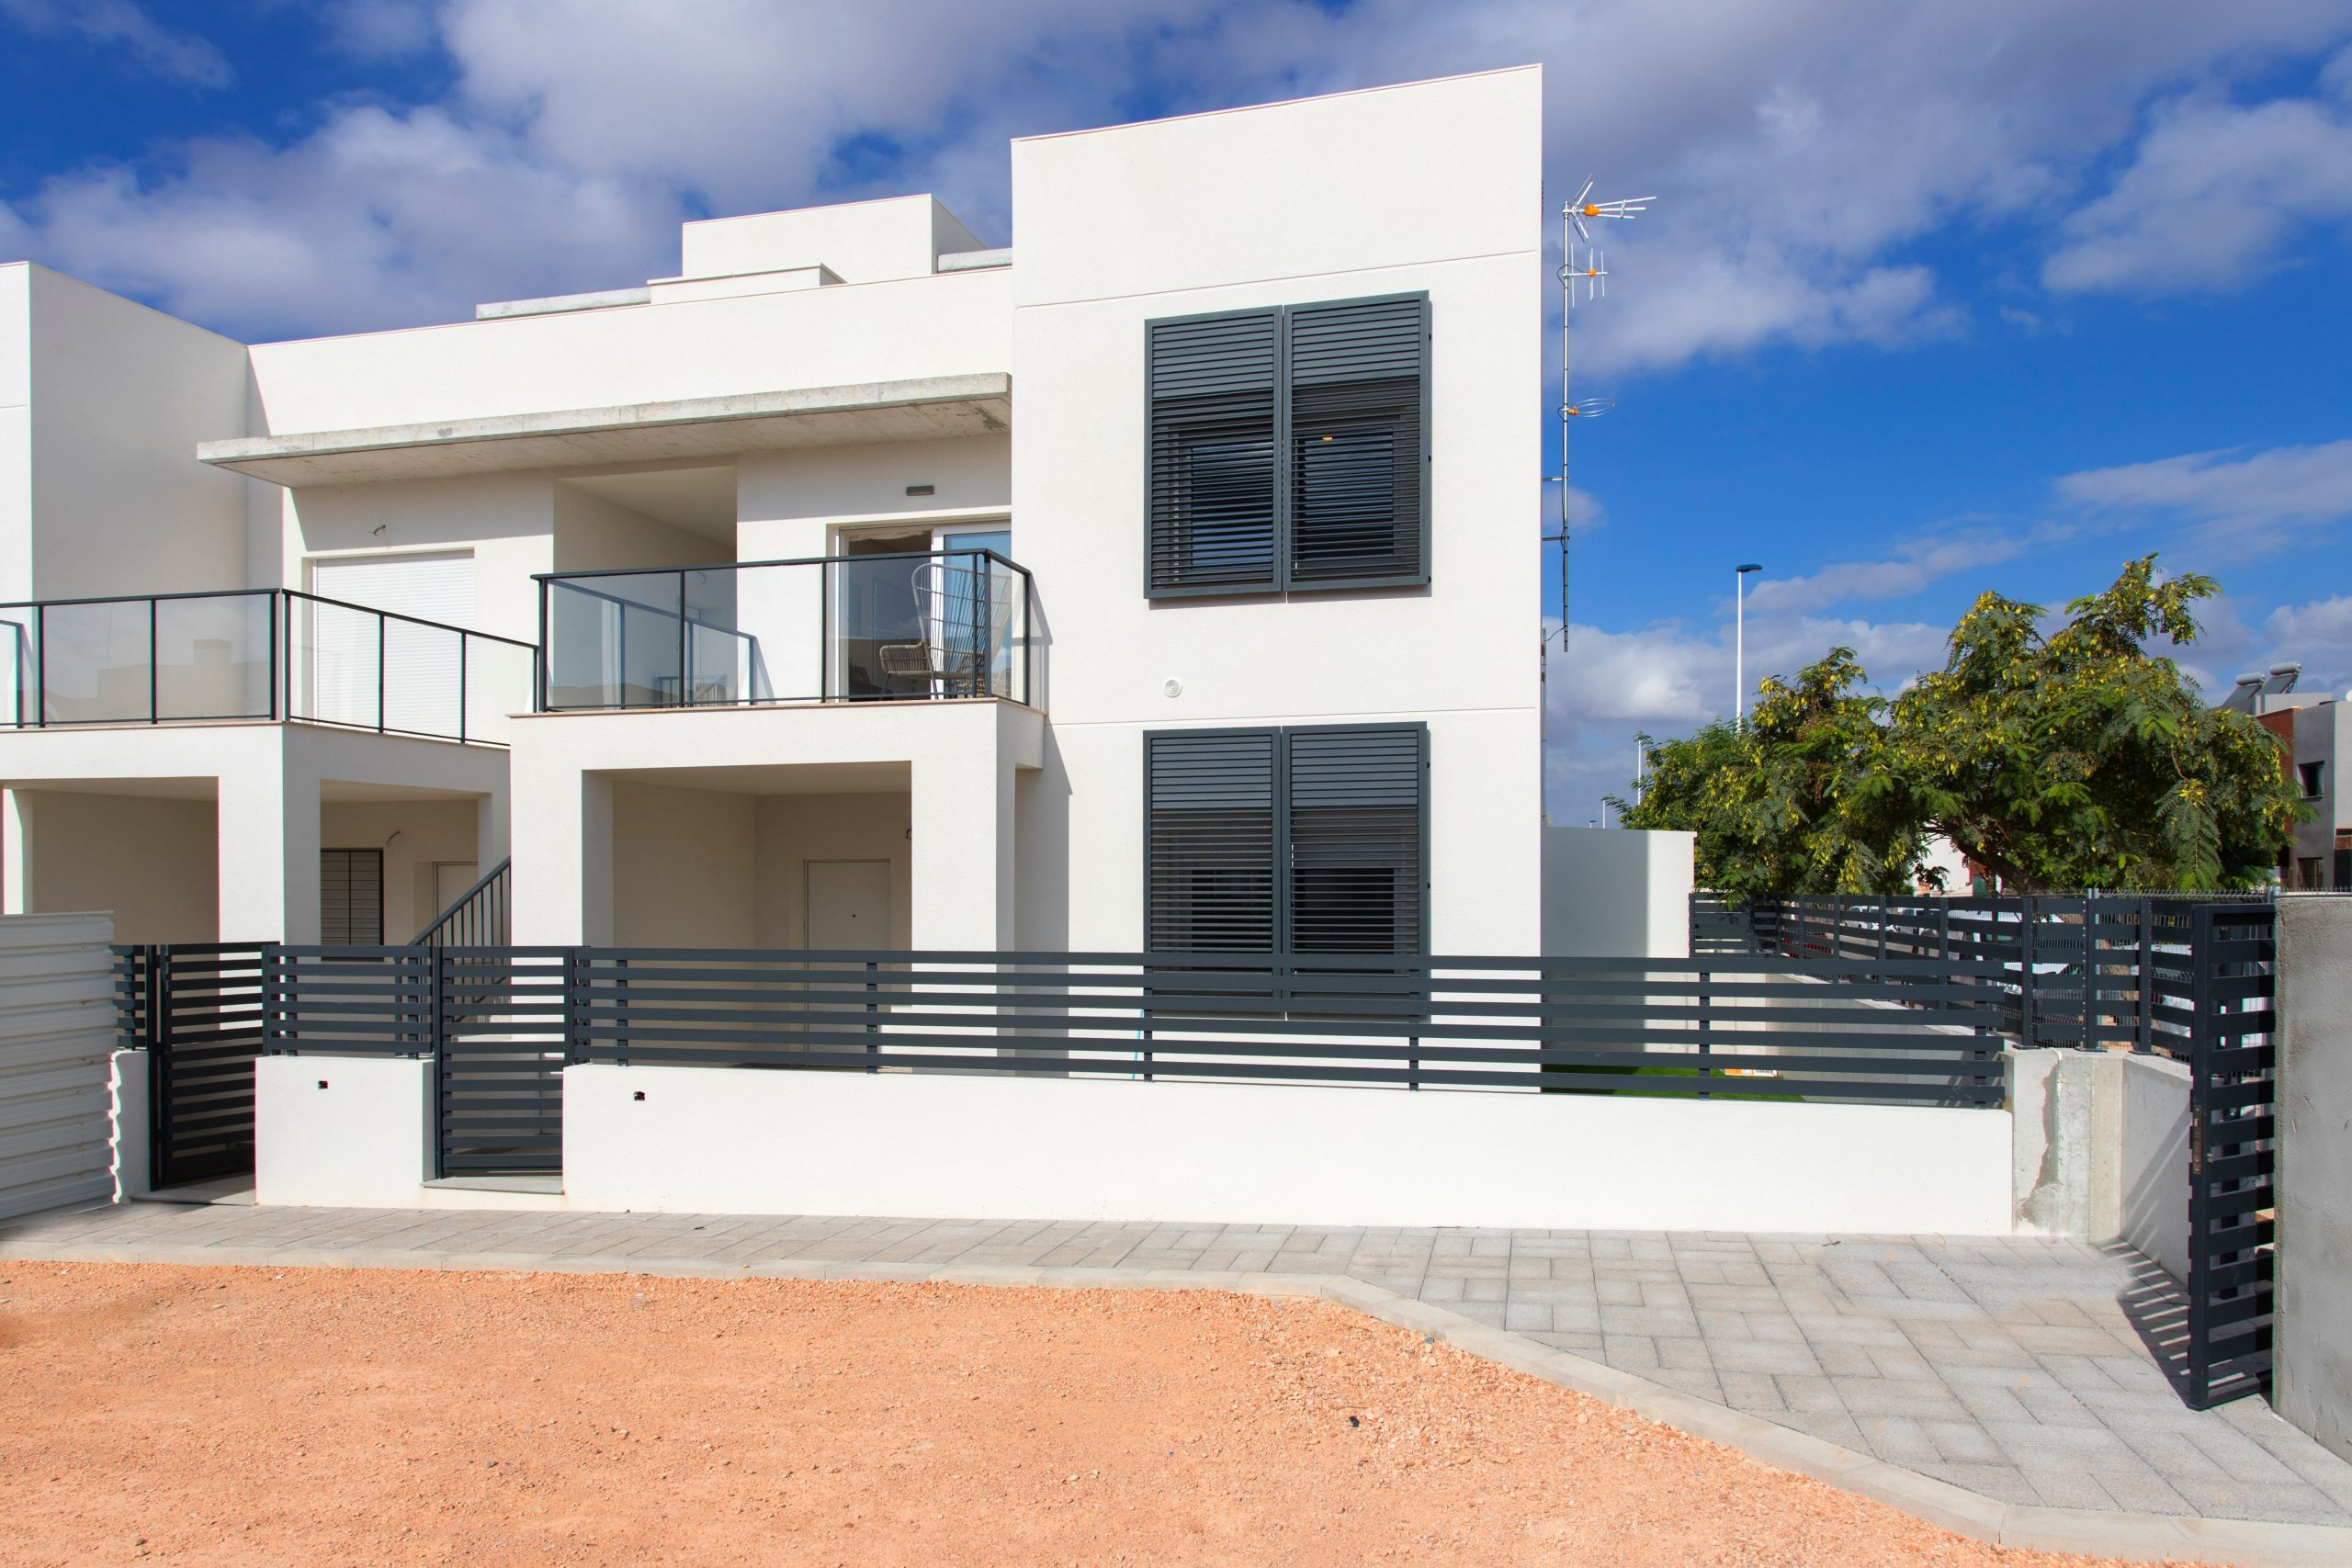 New built bungalows in Torrevieja